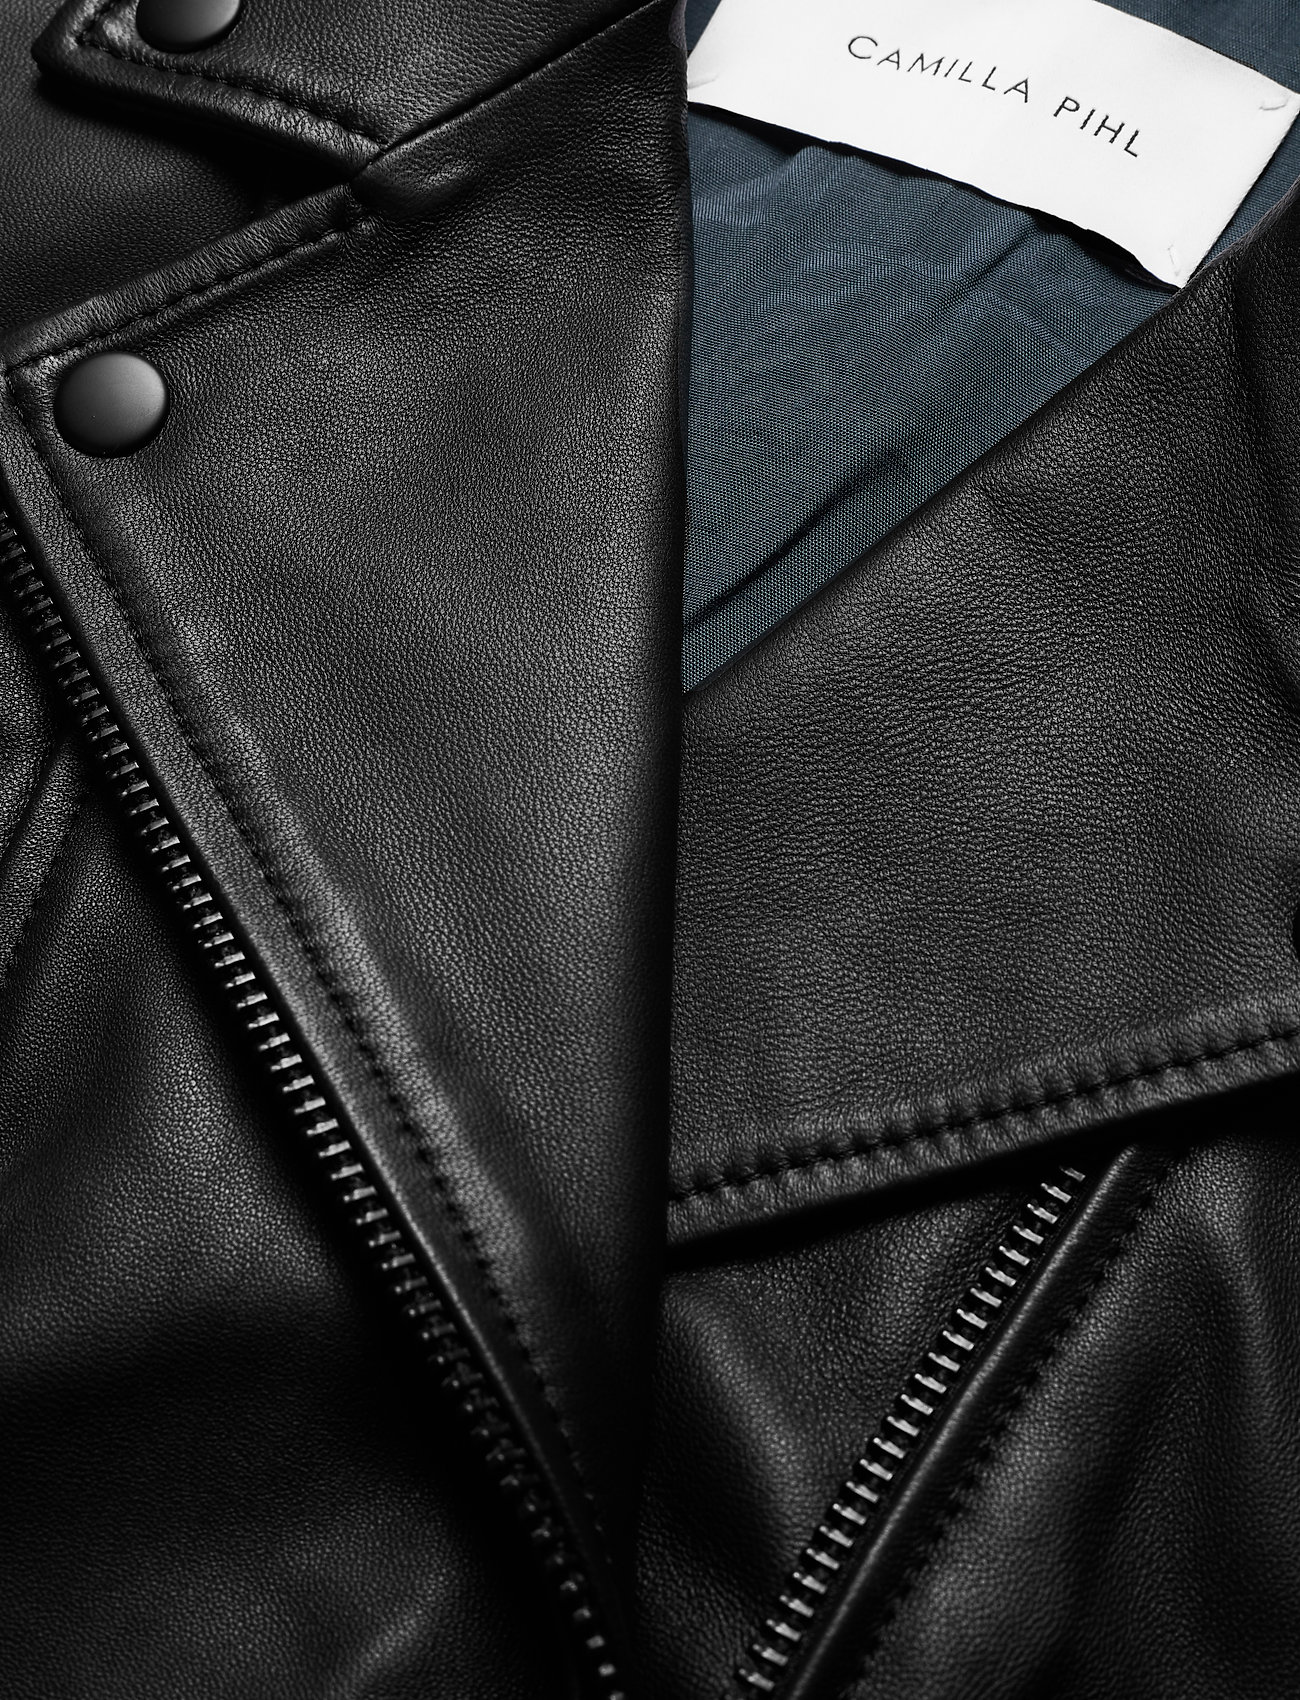 City Leather Jacket (Black) (3719.40 kr) - Camilla Pihl